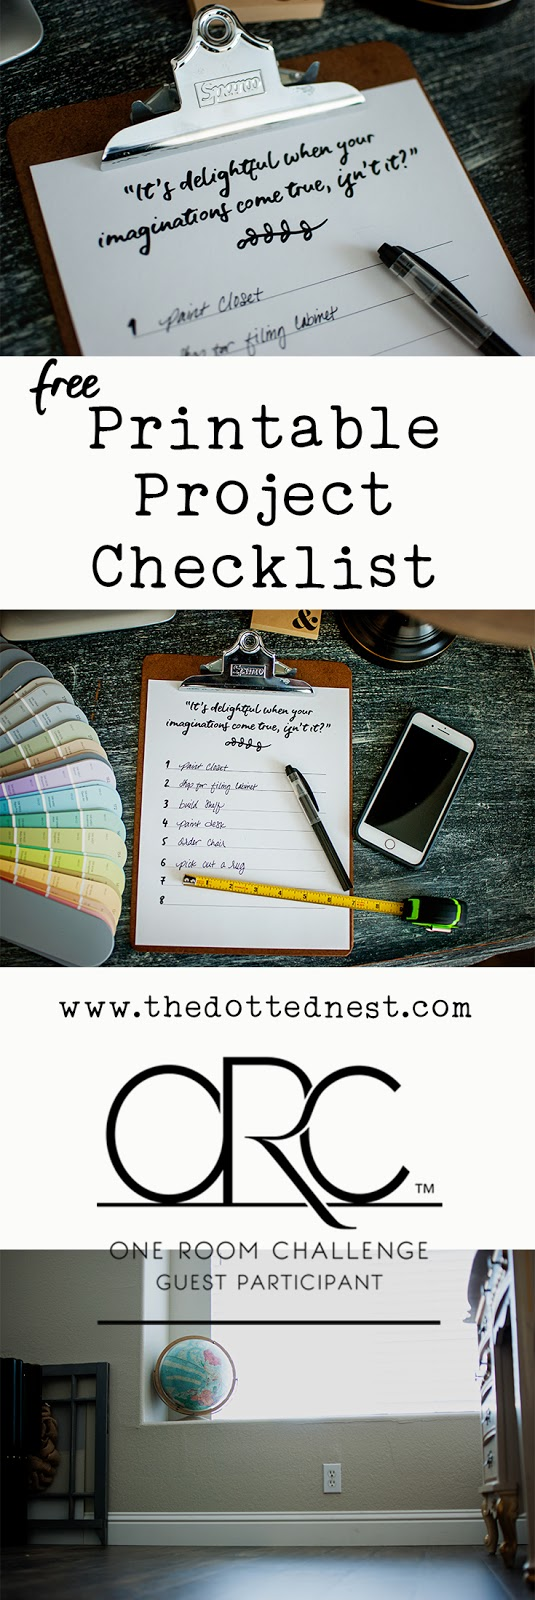 Free Printable Project Checklist and One Room Challenge Update